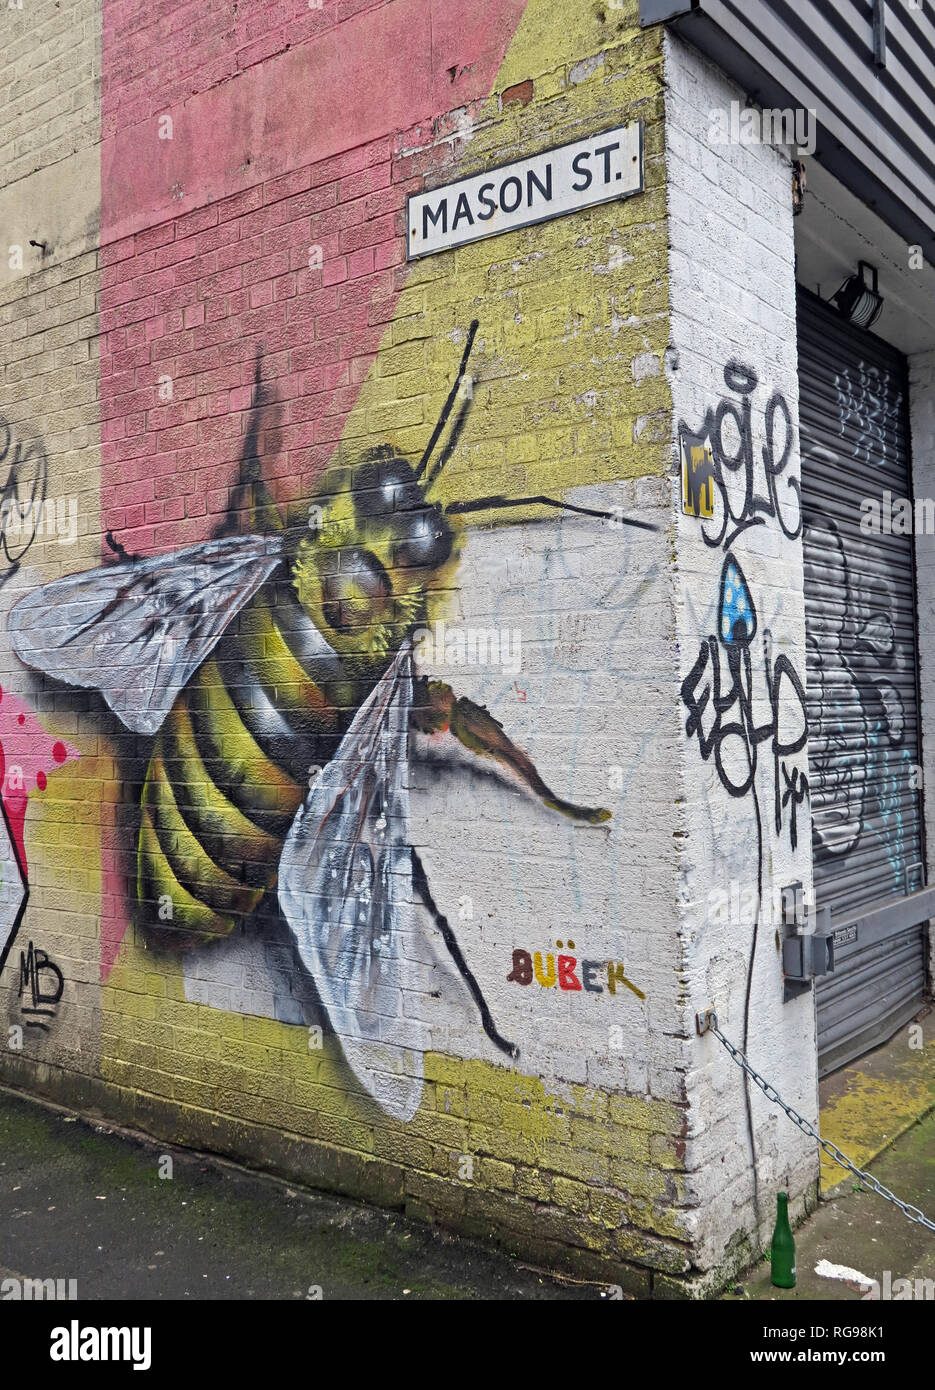 Manchester Bee on wall at Mason St, Northern Quarter, North West England, UK, M4 5JU - Stock Image